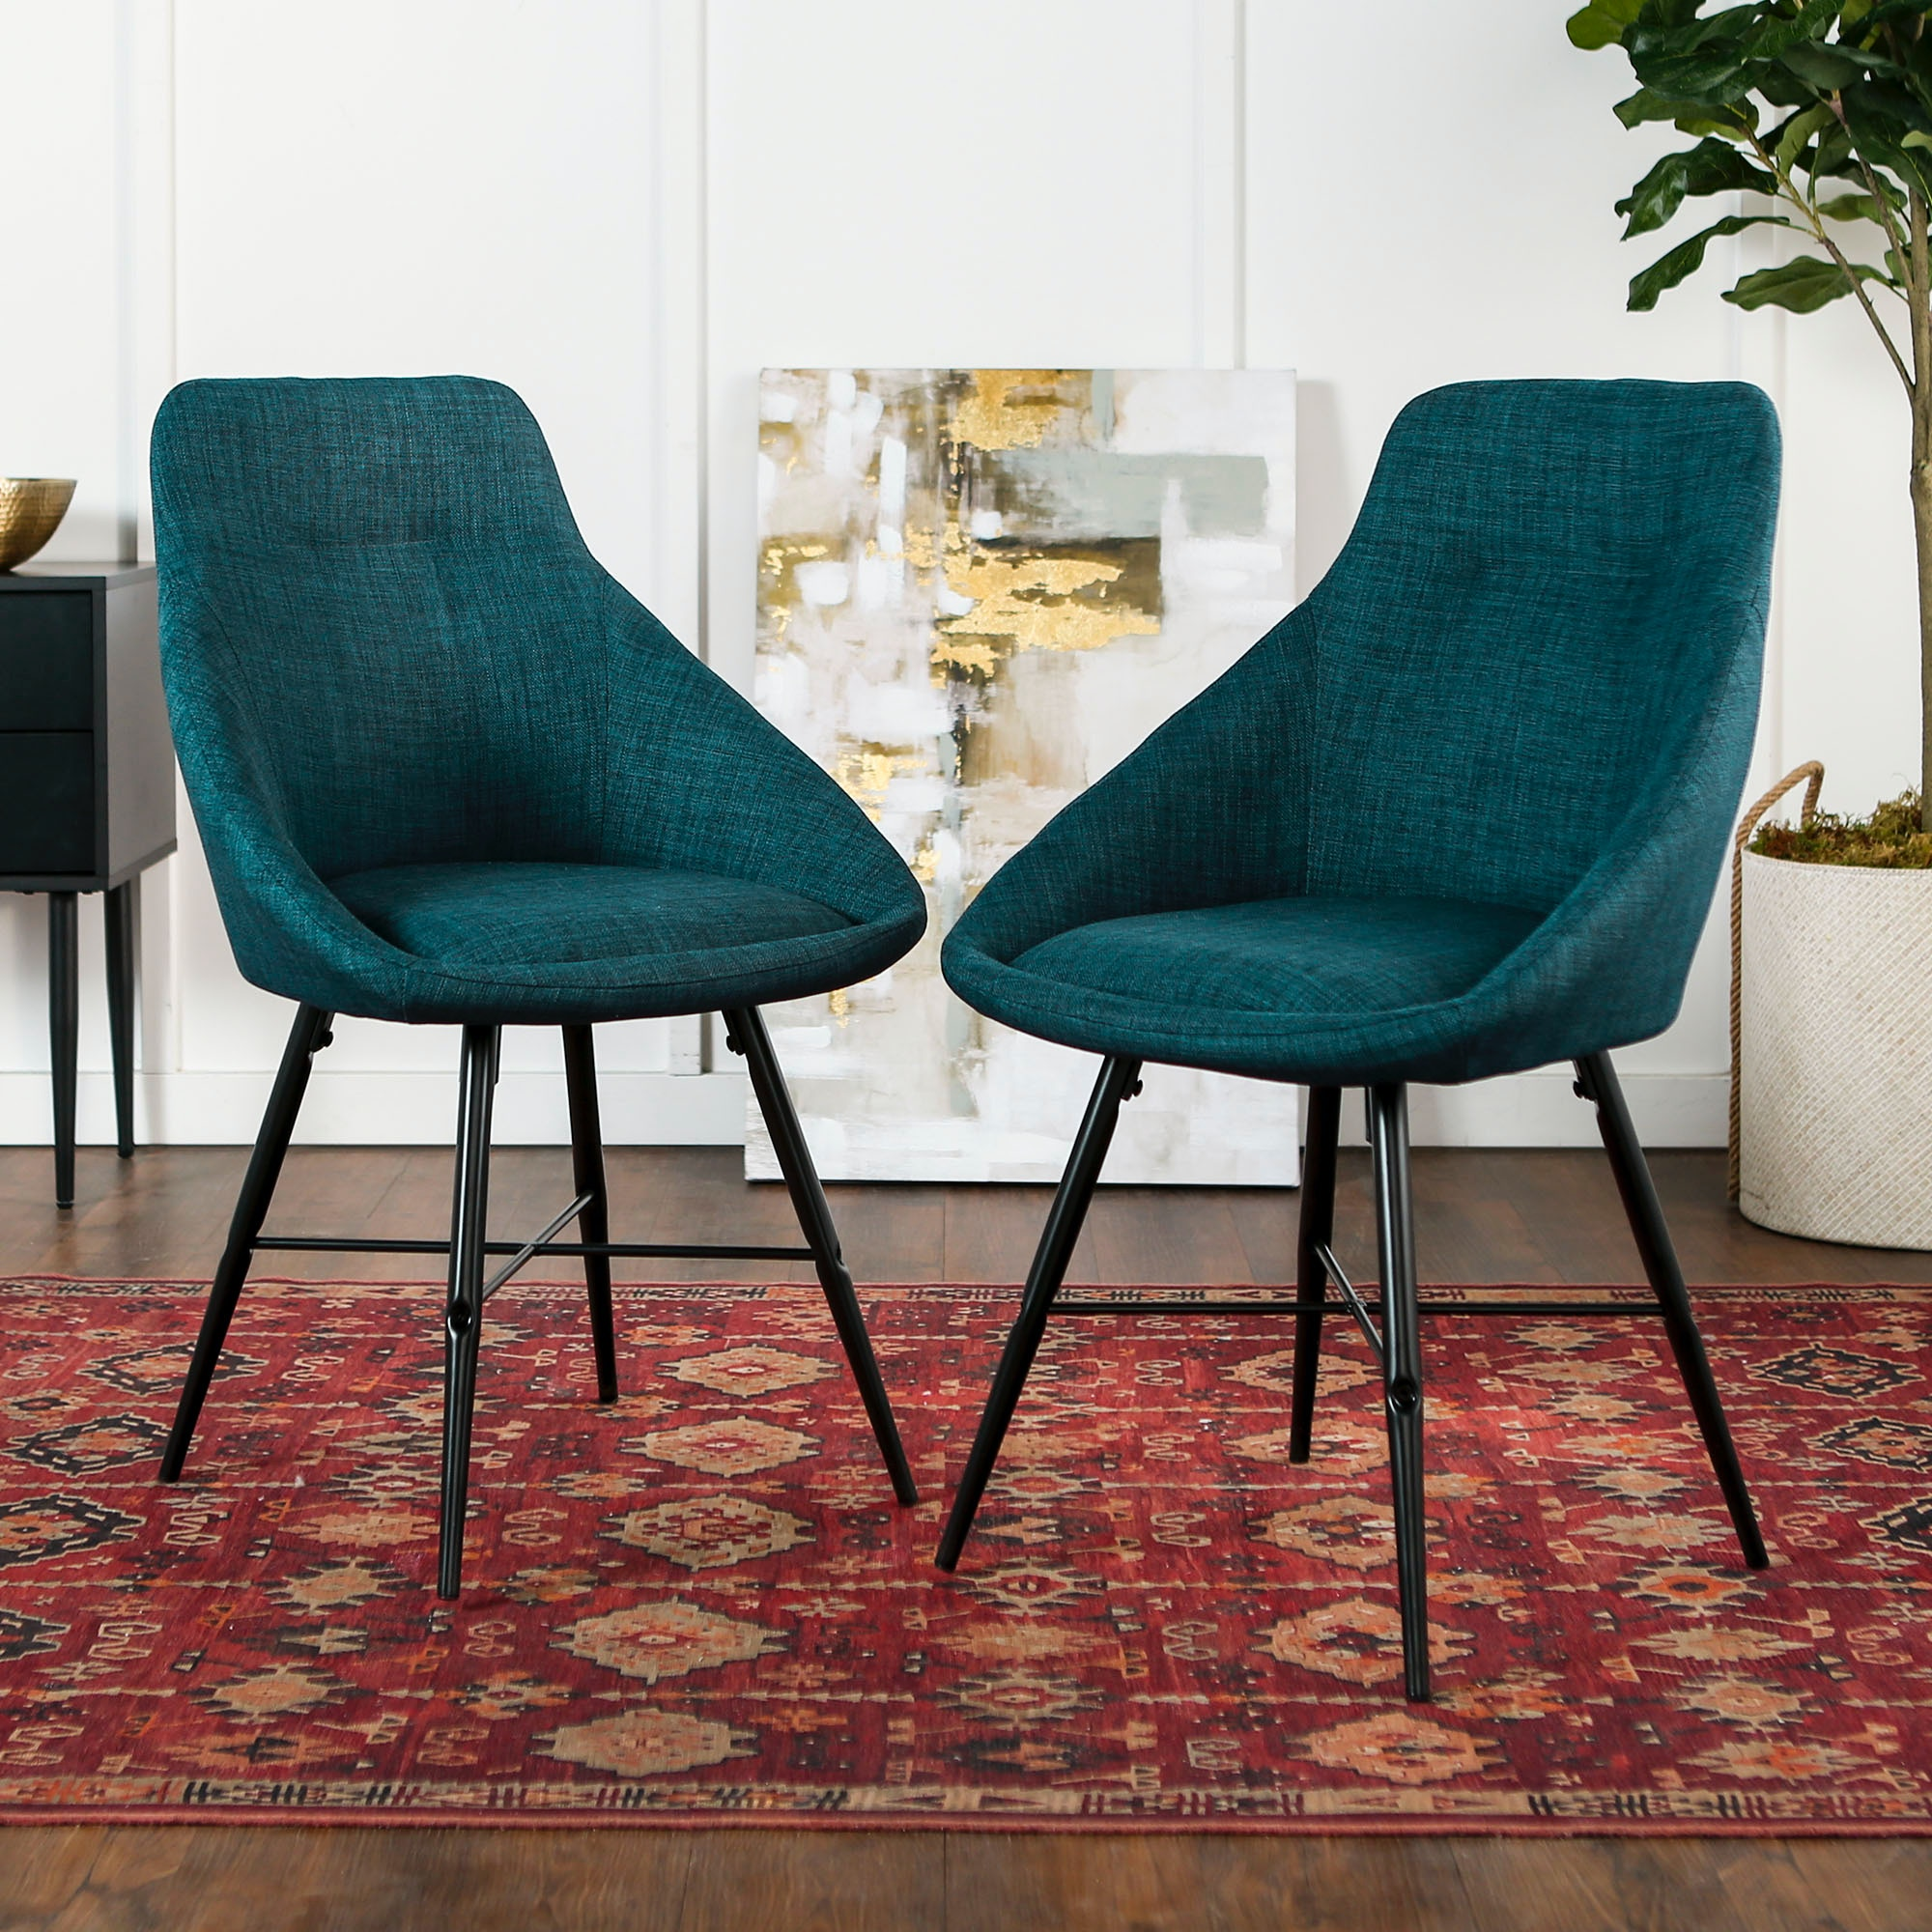 Marvelous Ft Myers Dining Room Mid Century Modern Upholstered Dining Side Accent Chair Set Of 2 Blue Wedch18Urb2Bu Walter E Smithe Furniture Design Caraccident5 Cool Chair Designs And Ideas Caraccident5Info